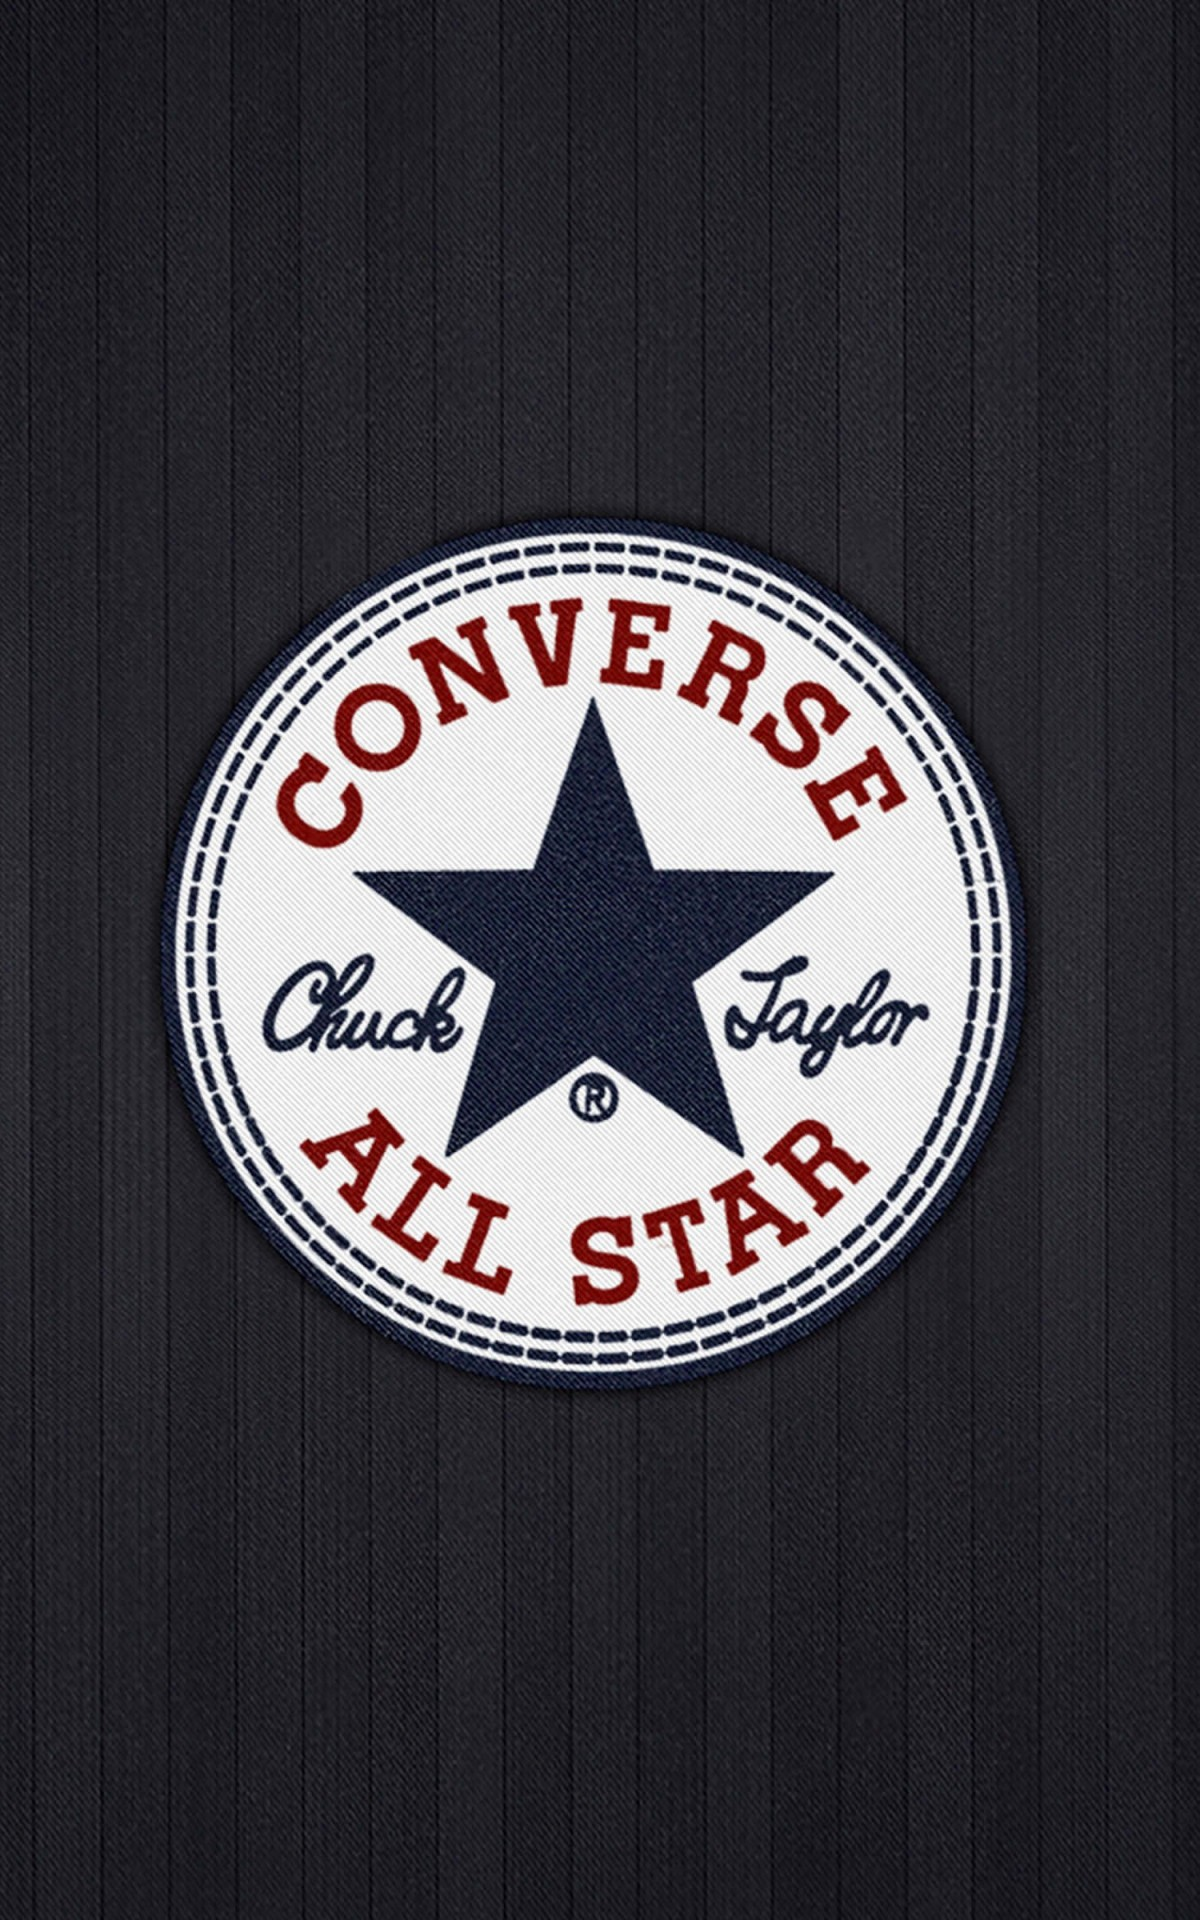 Converse All Star Wallpaper for Amazon Kindle Fire HDX